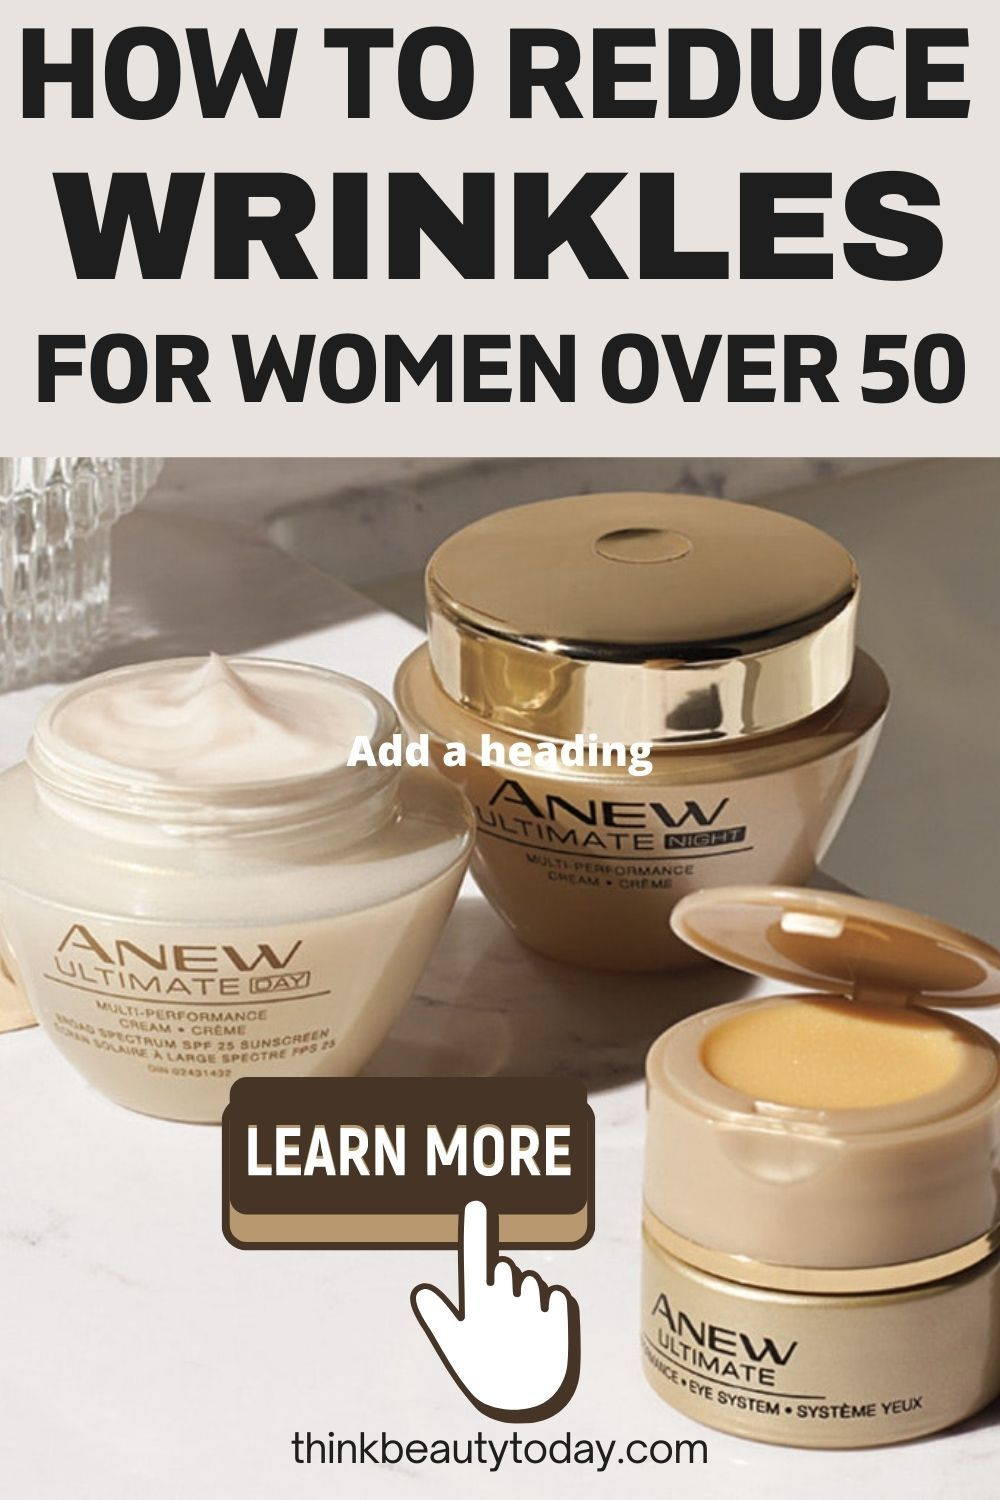 Avon Anew Ultimate Skin Care For Age 50 Best Selling Anti Aging In 2020 Avon Anew Ultimate Avon Anew Avon Skin Care